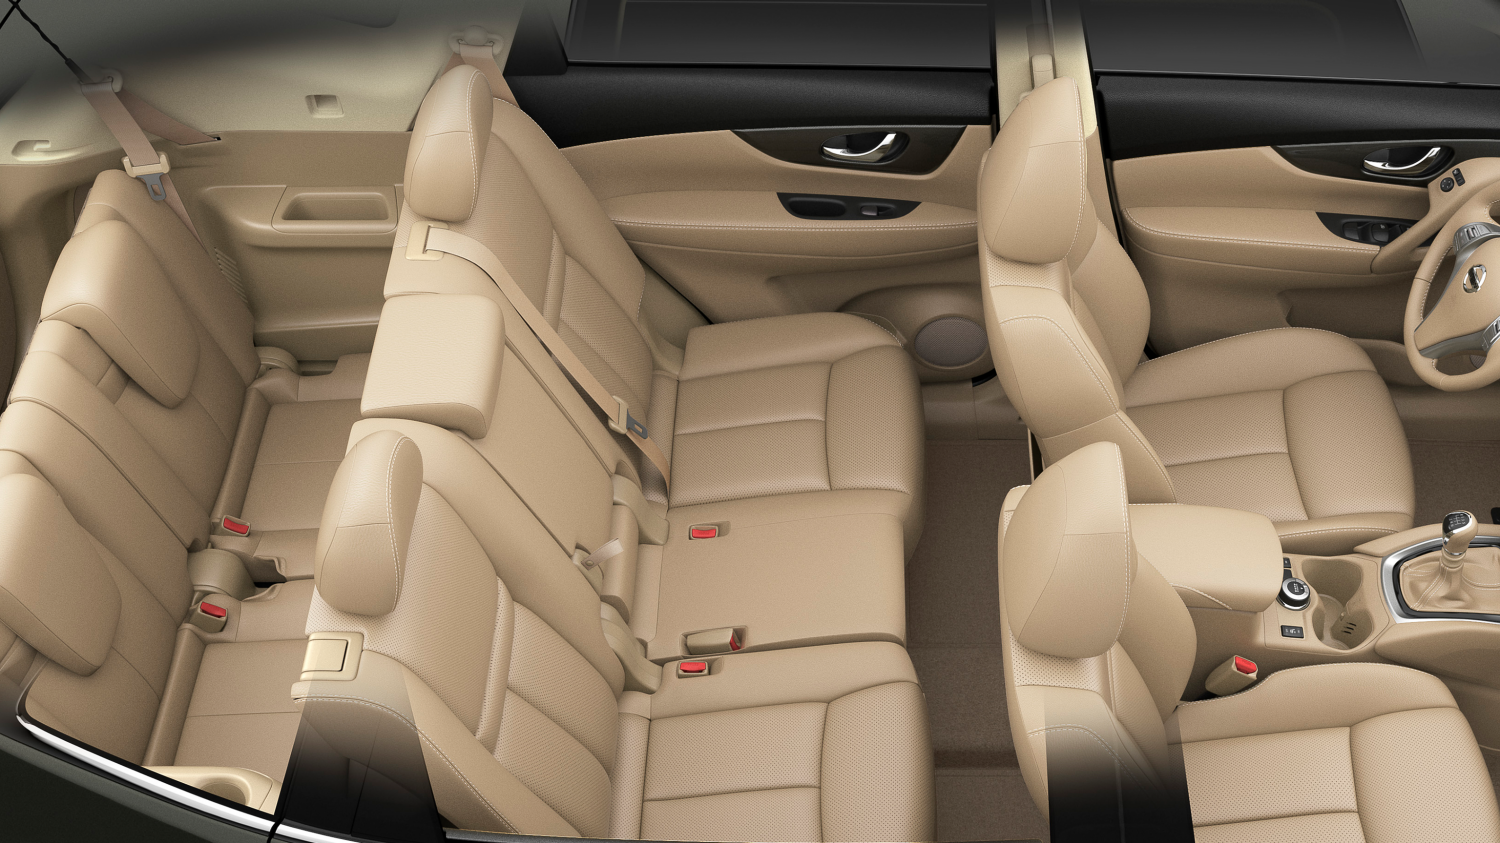 Nissan X-Trail | 4x4 interior